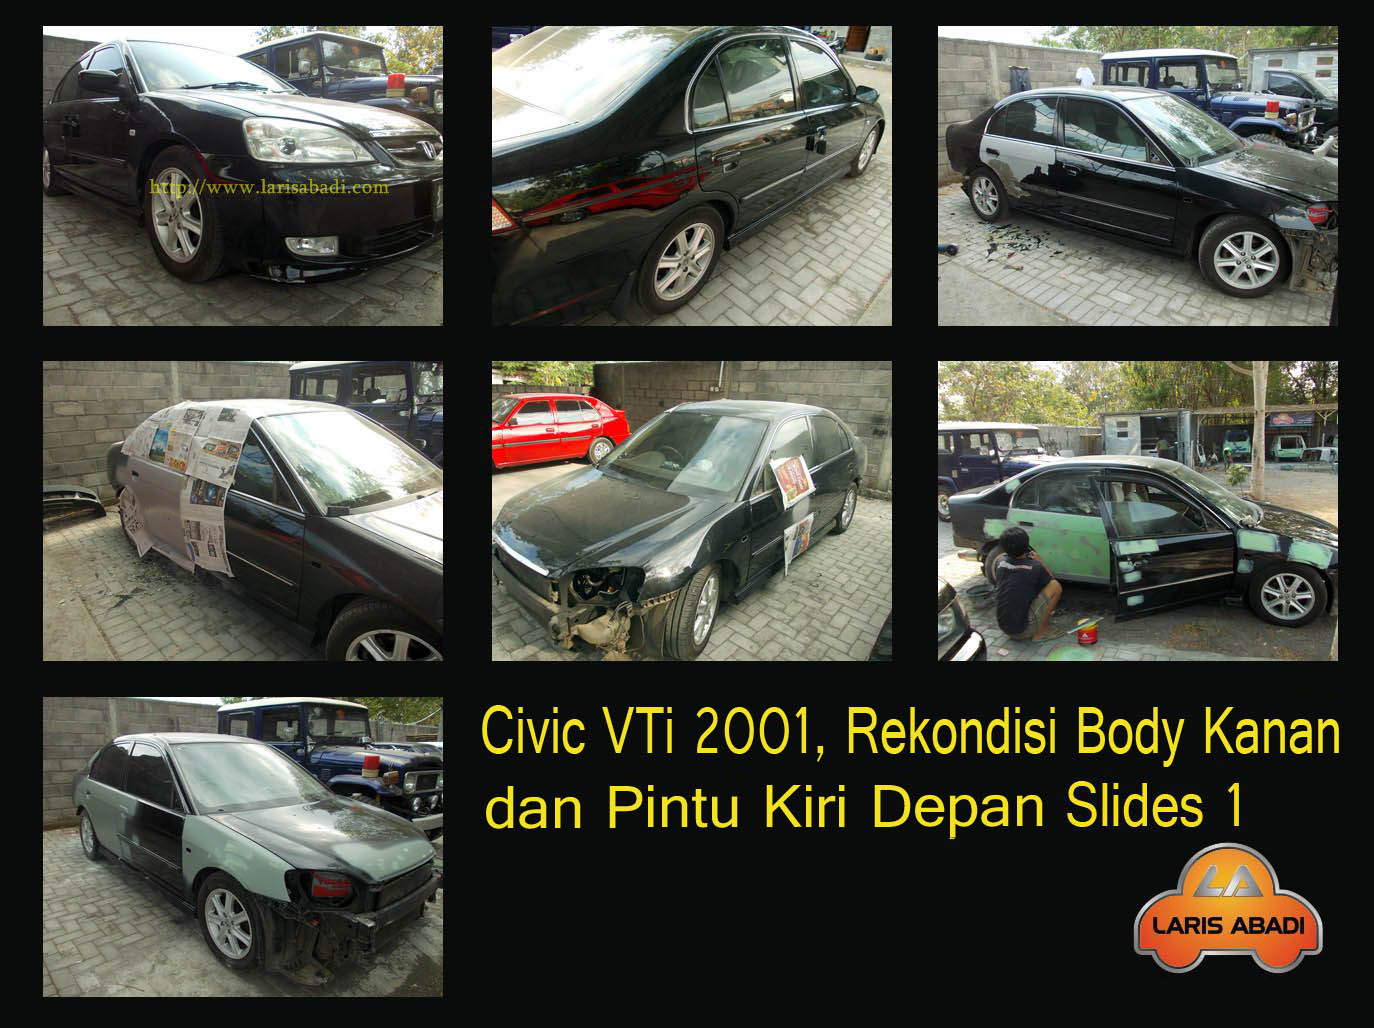 Civic VTi 2001